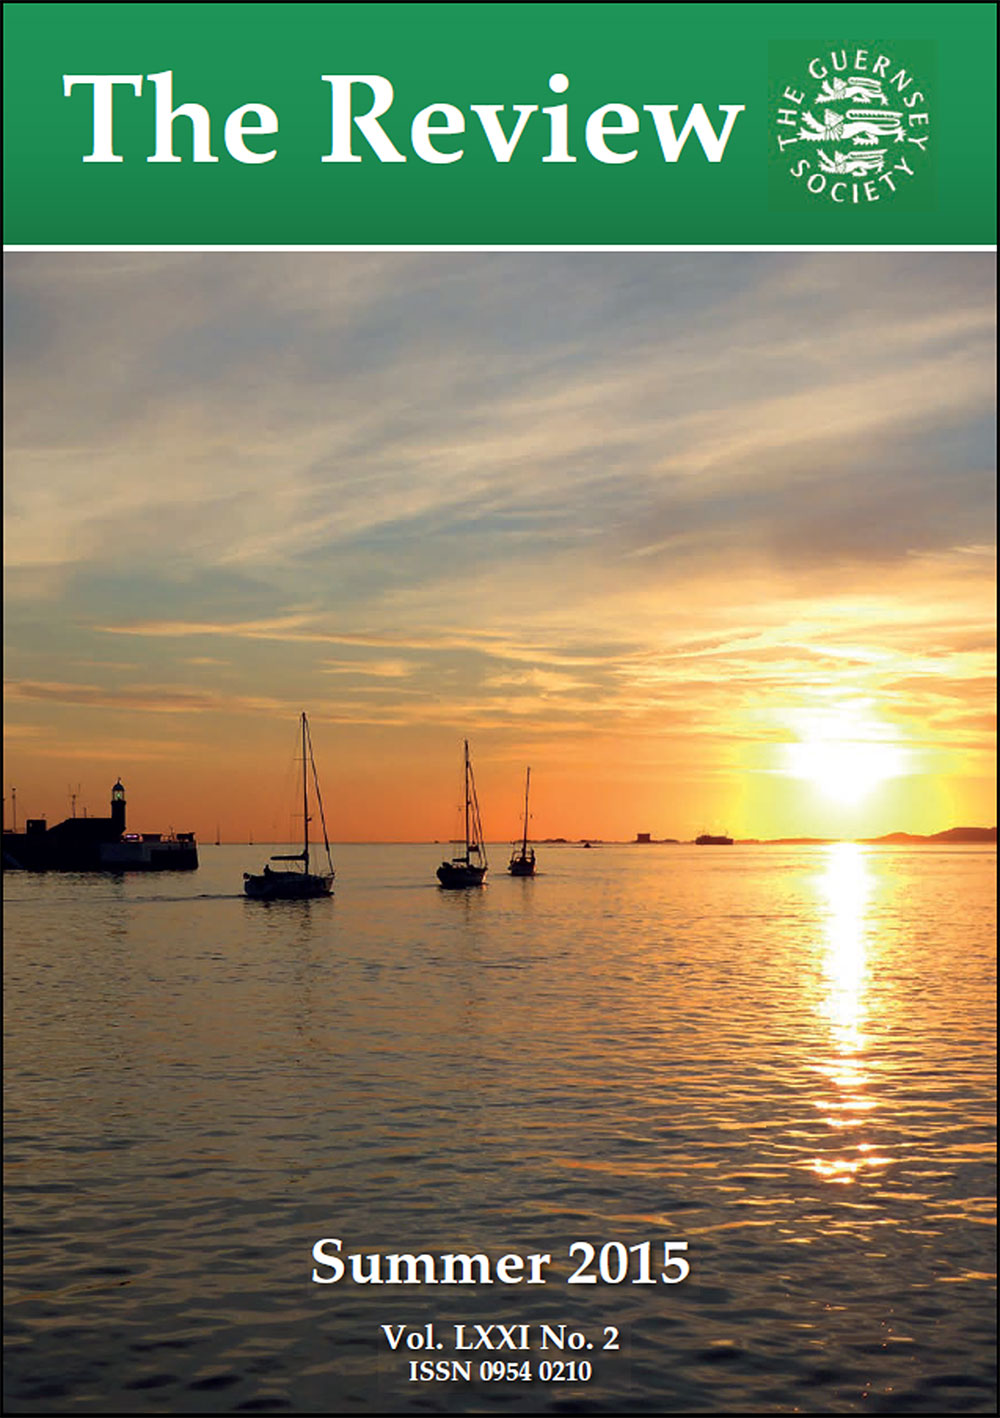 The Review of the Guernsey Society - Spring 2015